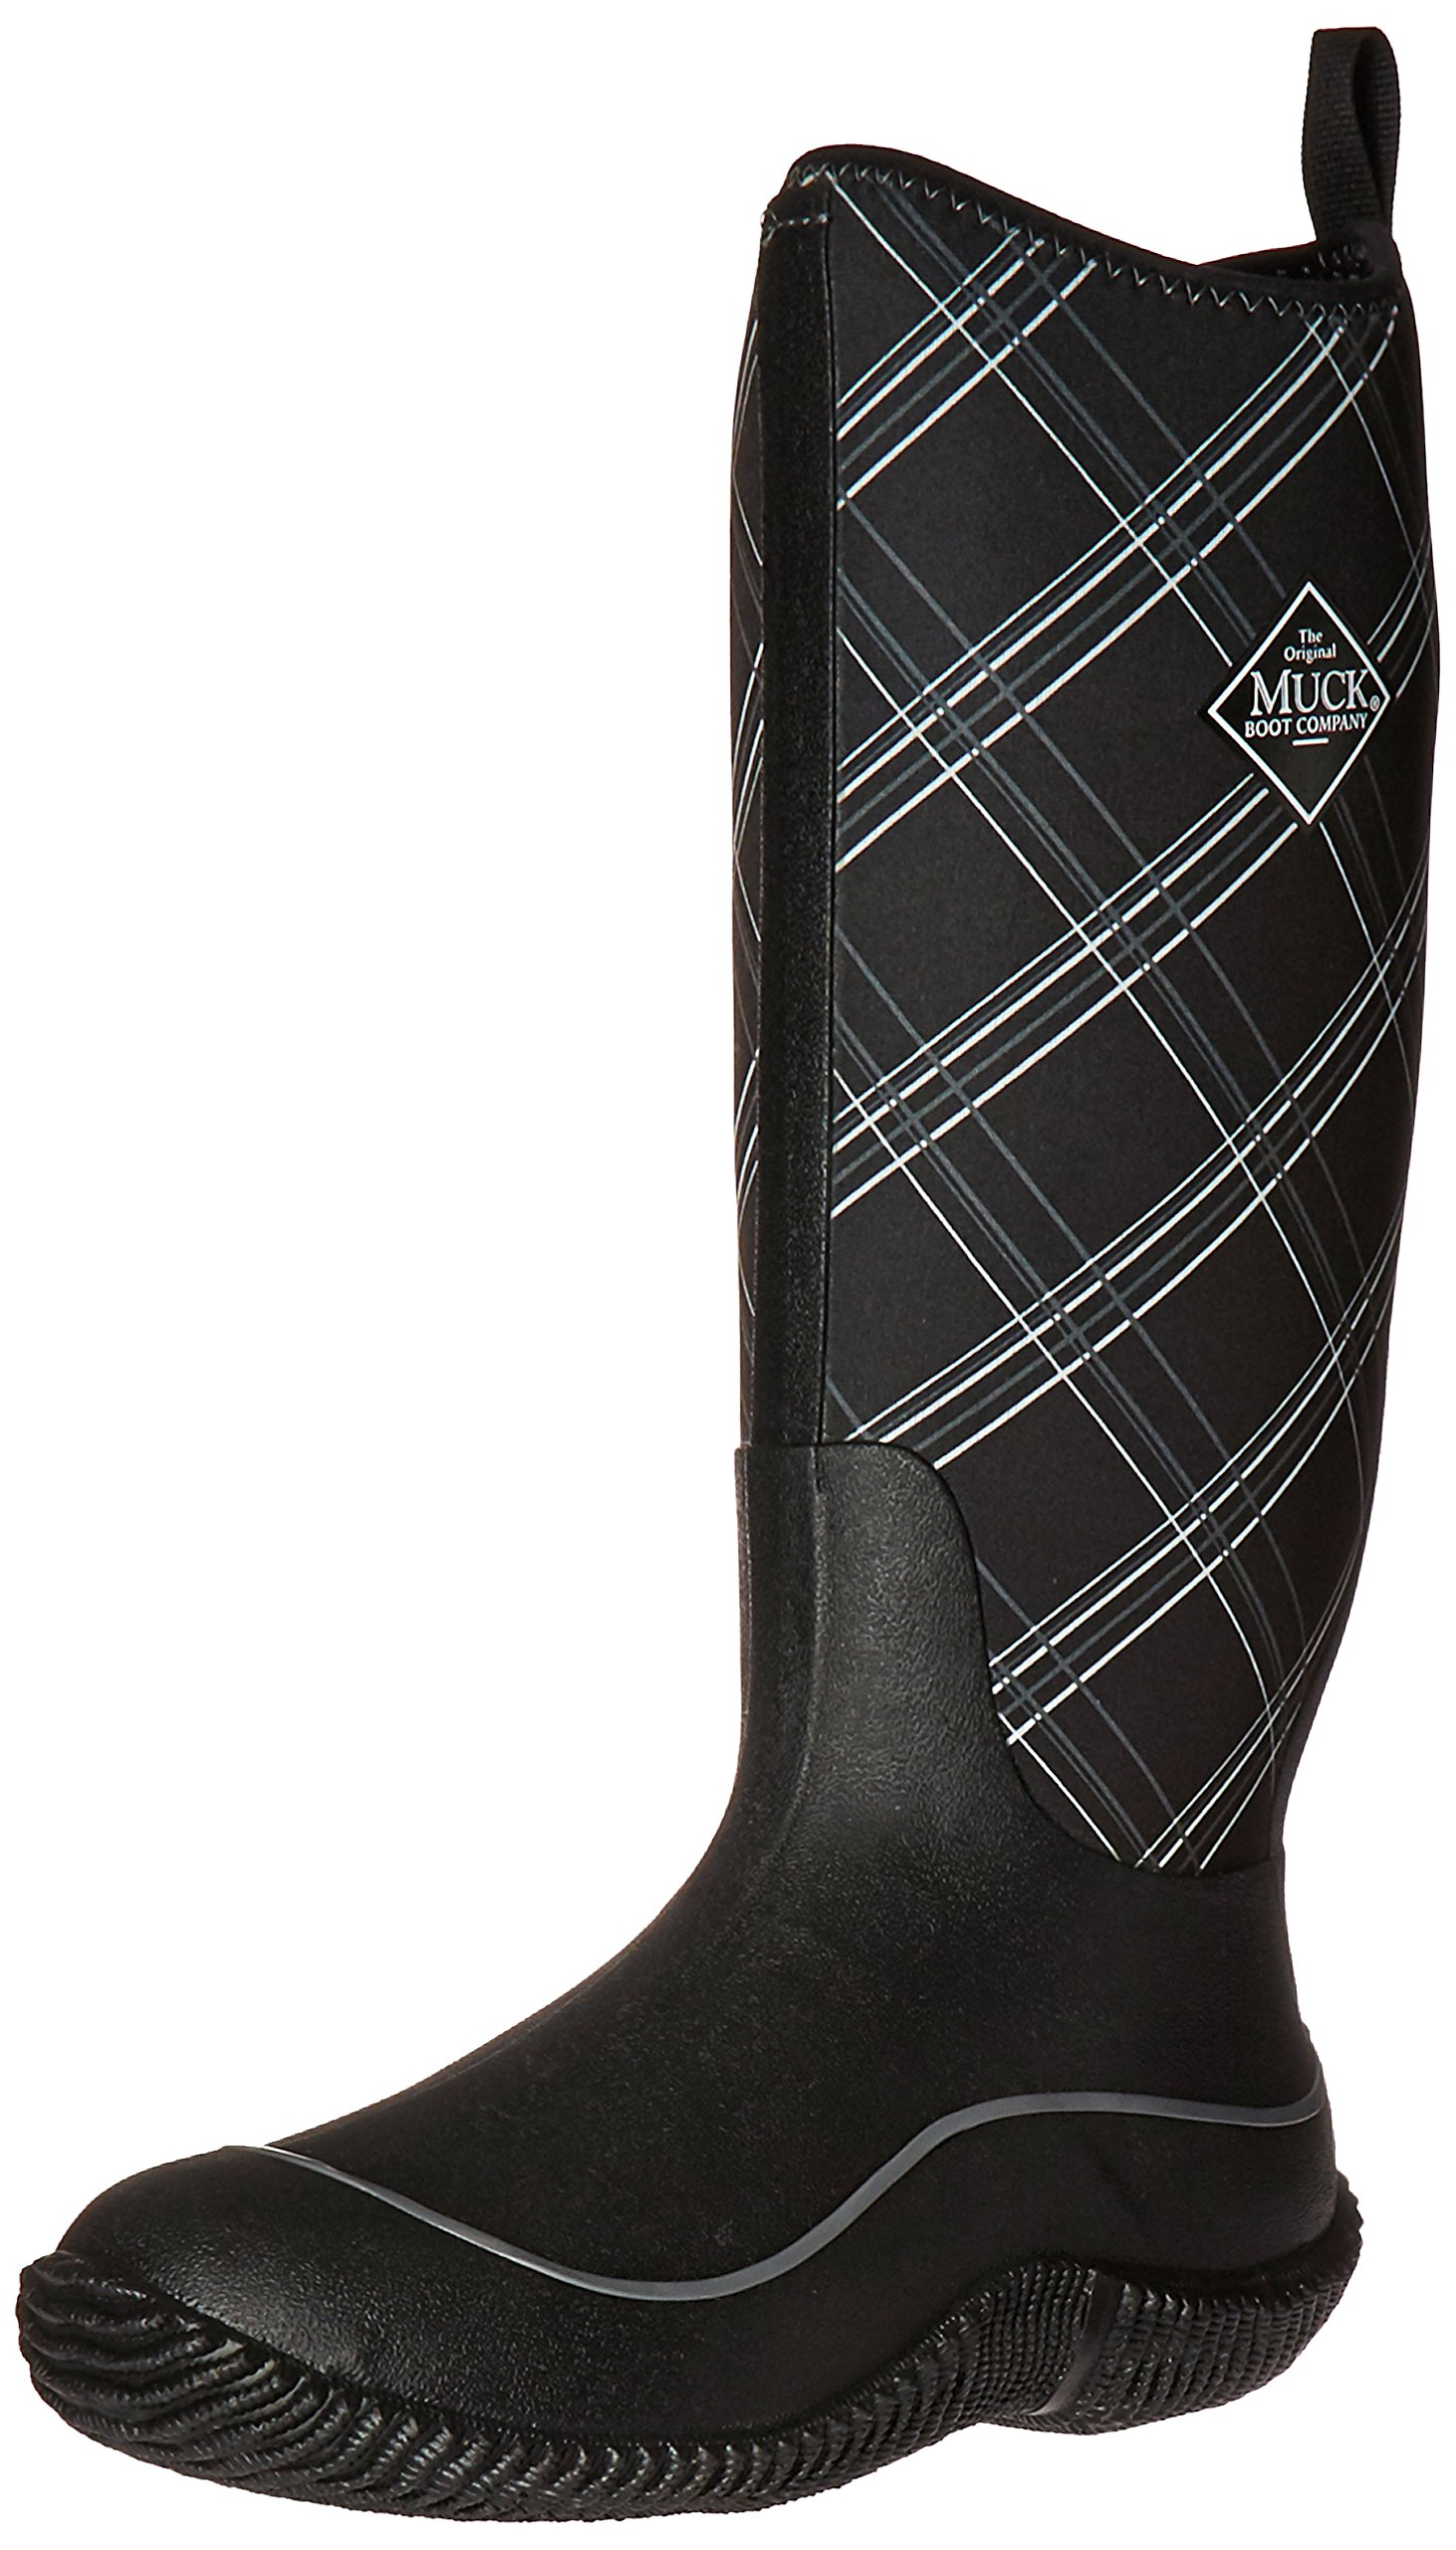 Muck Hale Multi-Season Women's Rubber Boots